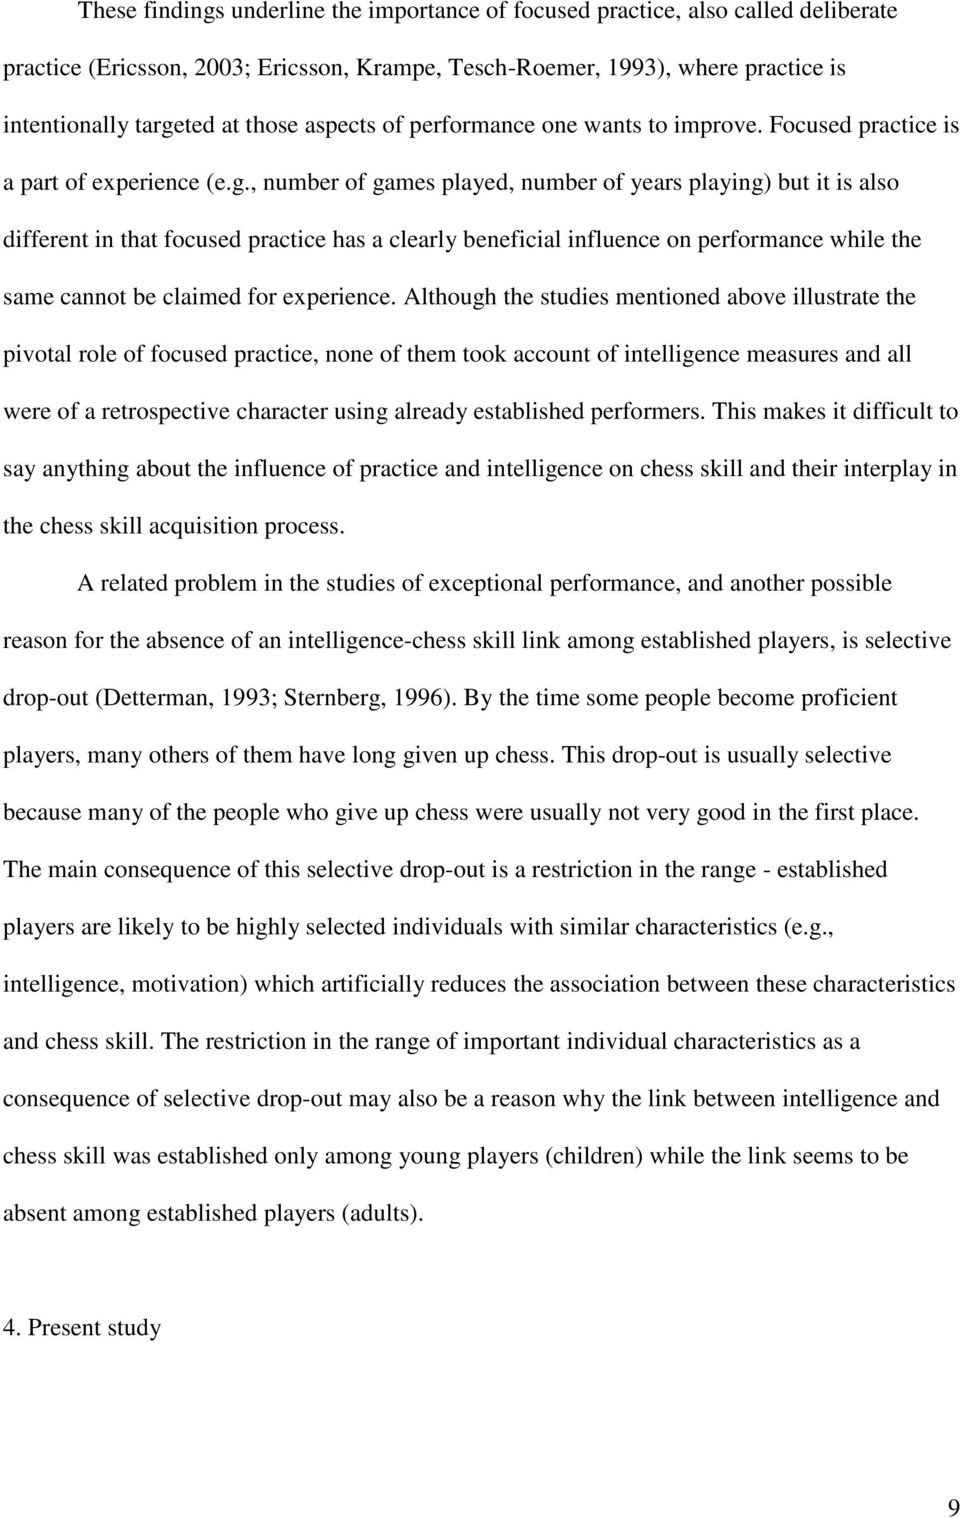 , number of games played, number of years playing) but it is also different in that focused practice has a clearly beneficial influence on performance while the same cannot be claimed for experience.